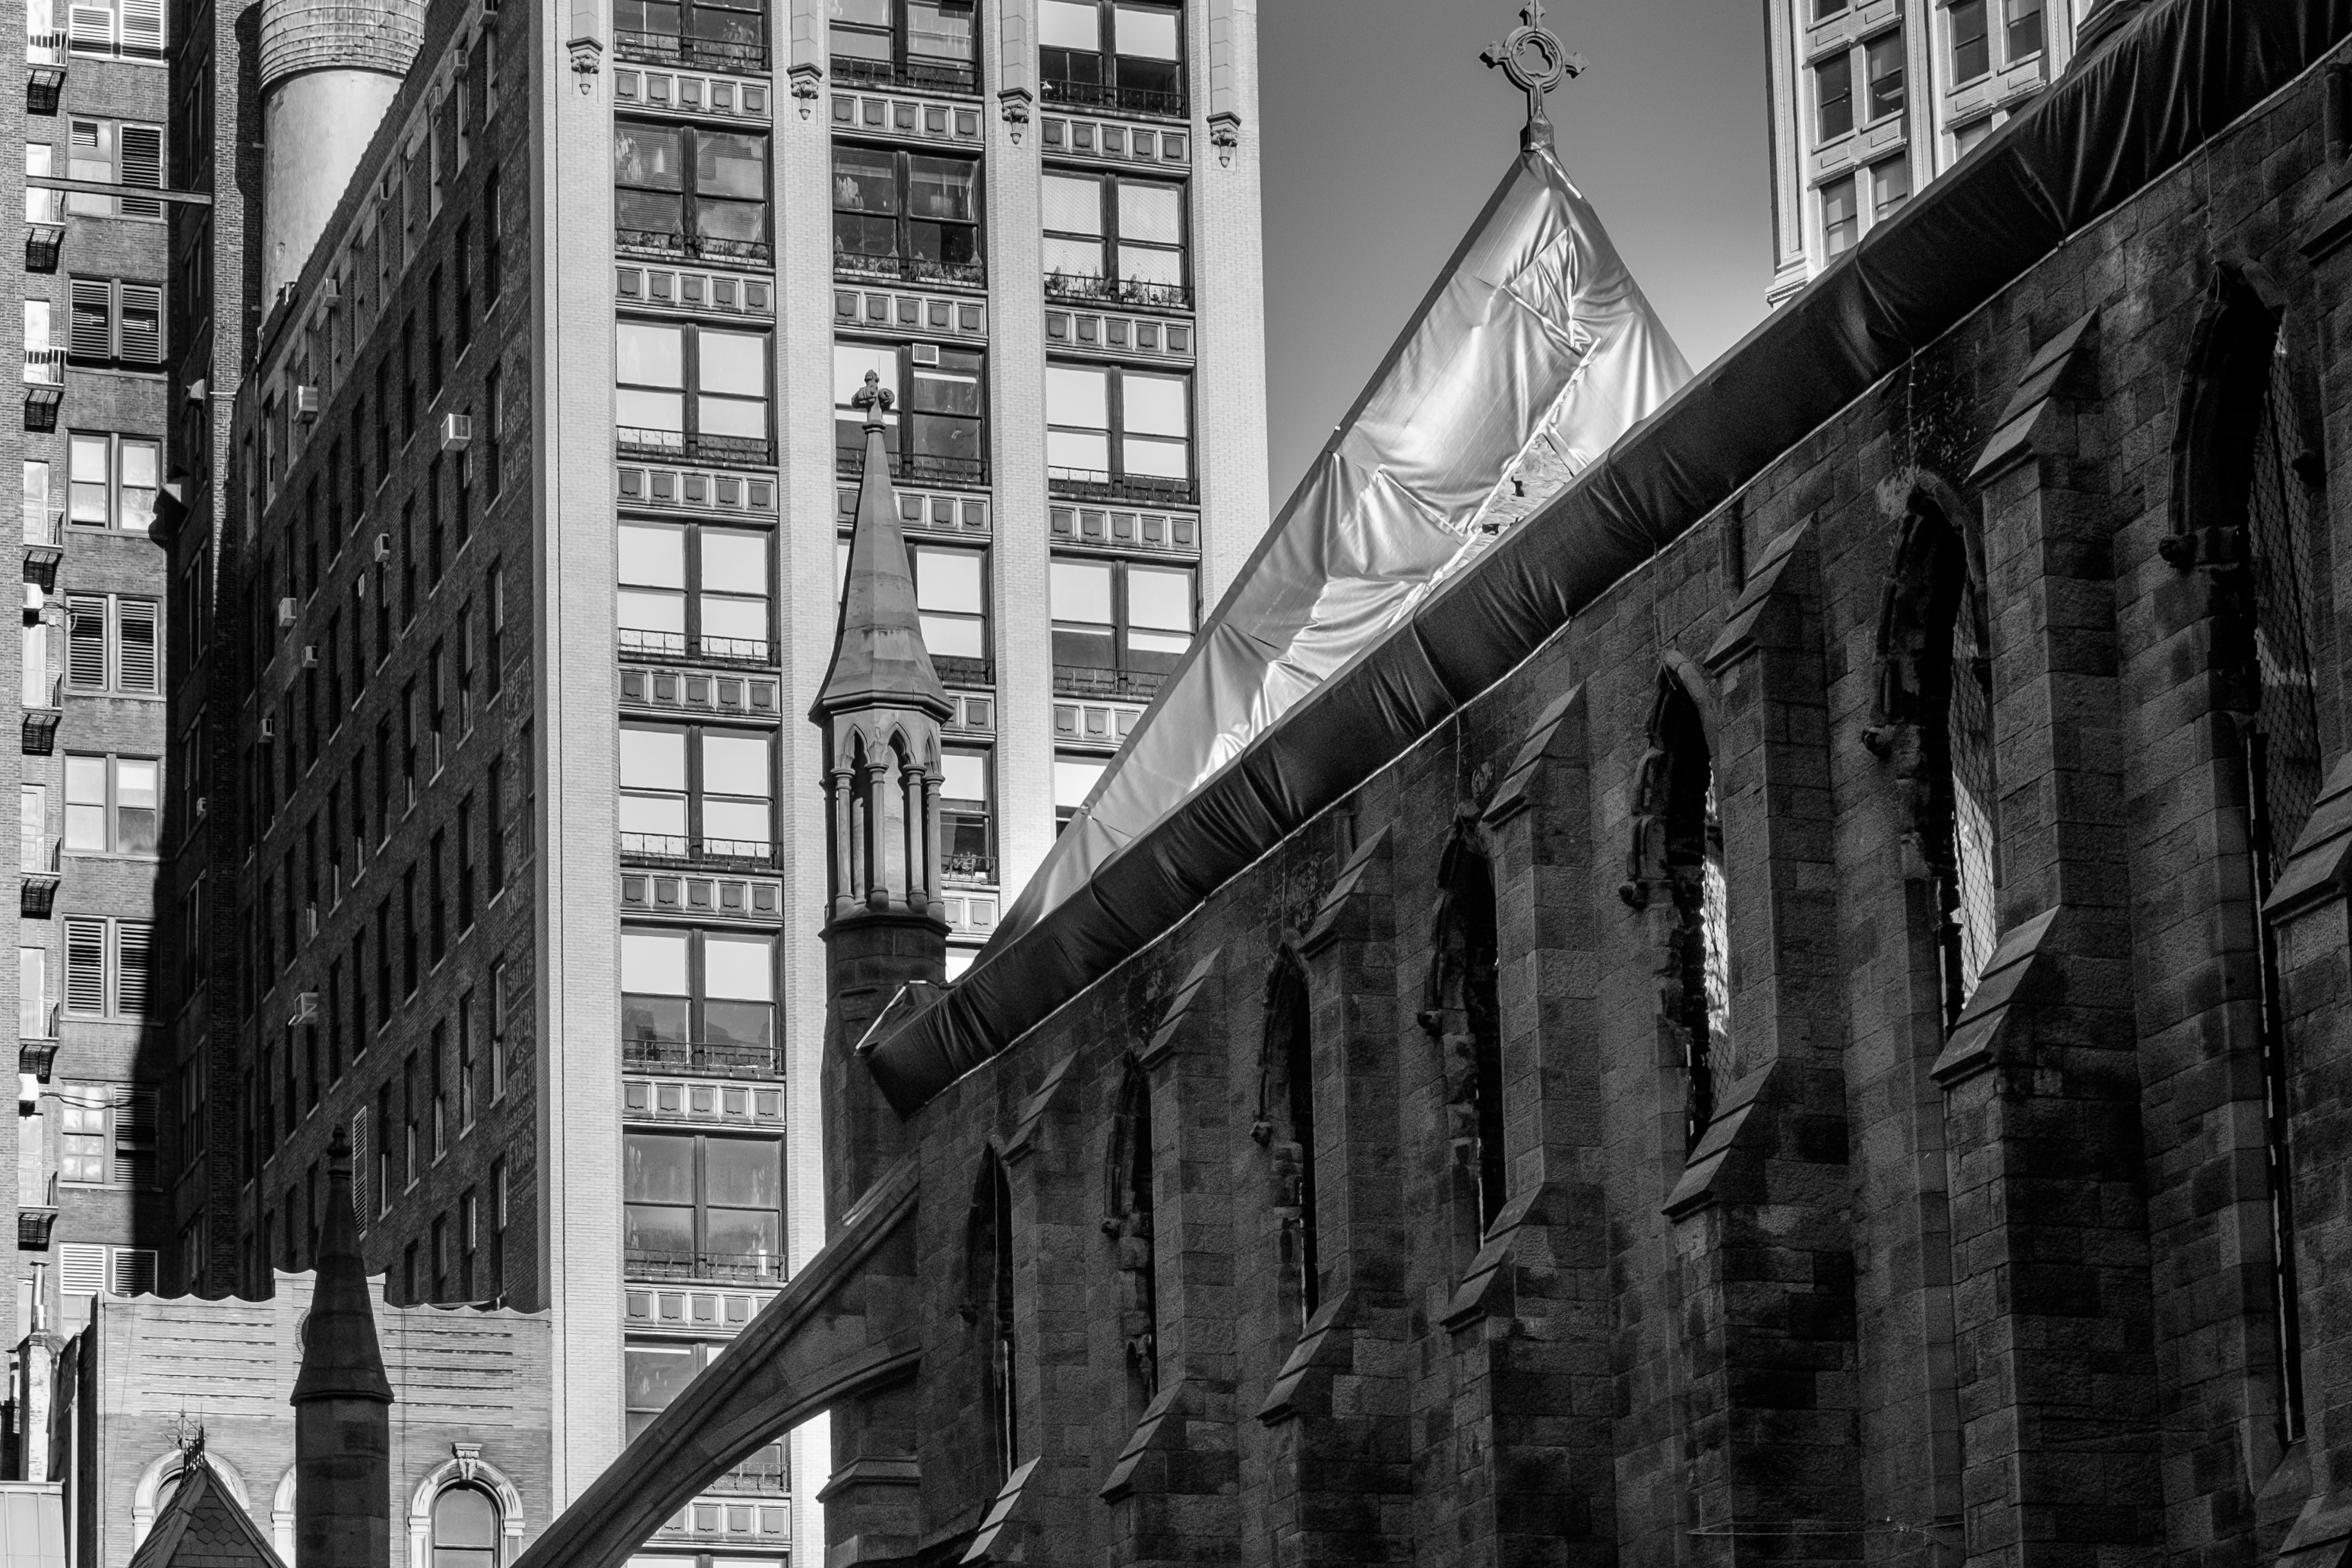 hollow-church-W25th-manhattan-black-and-white-photography